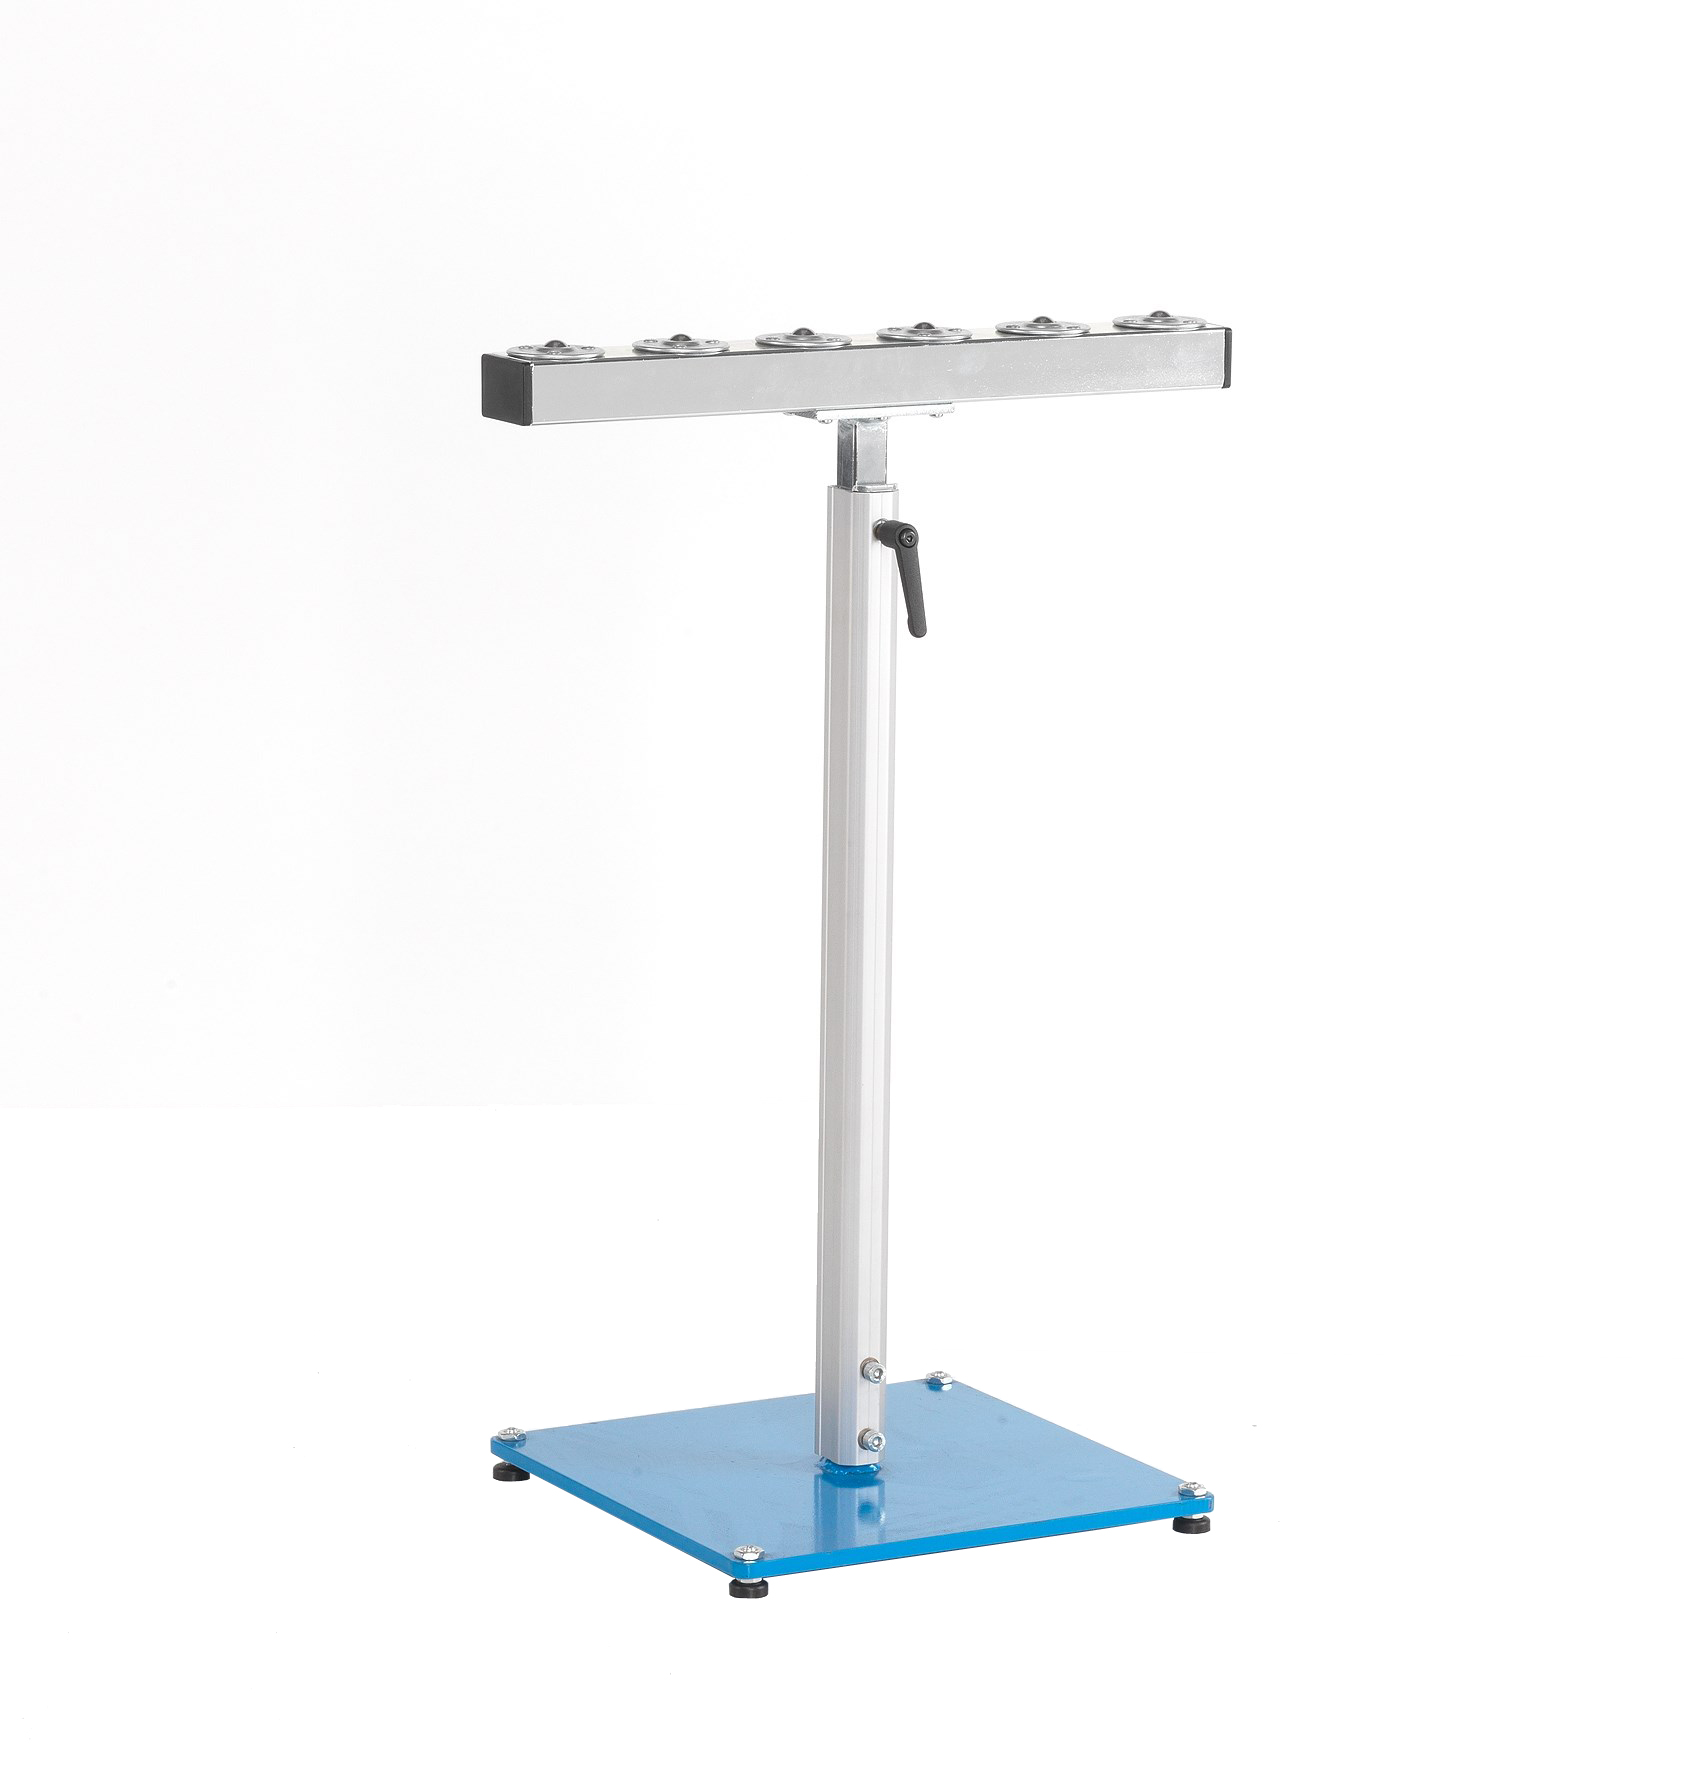 Material support stand with ball roller rail with 6 ball rollers